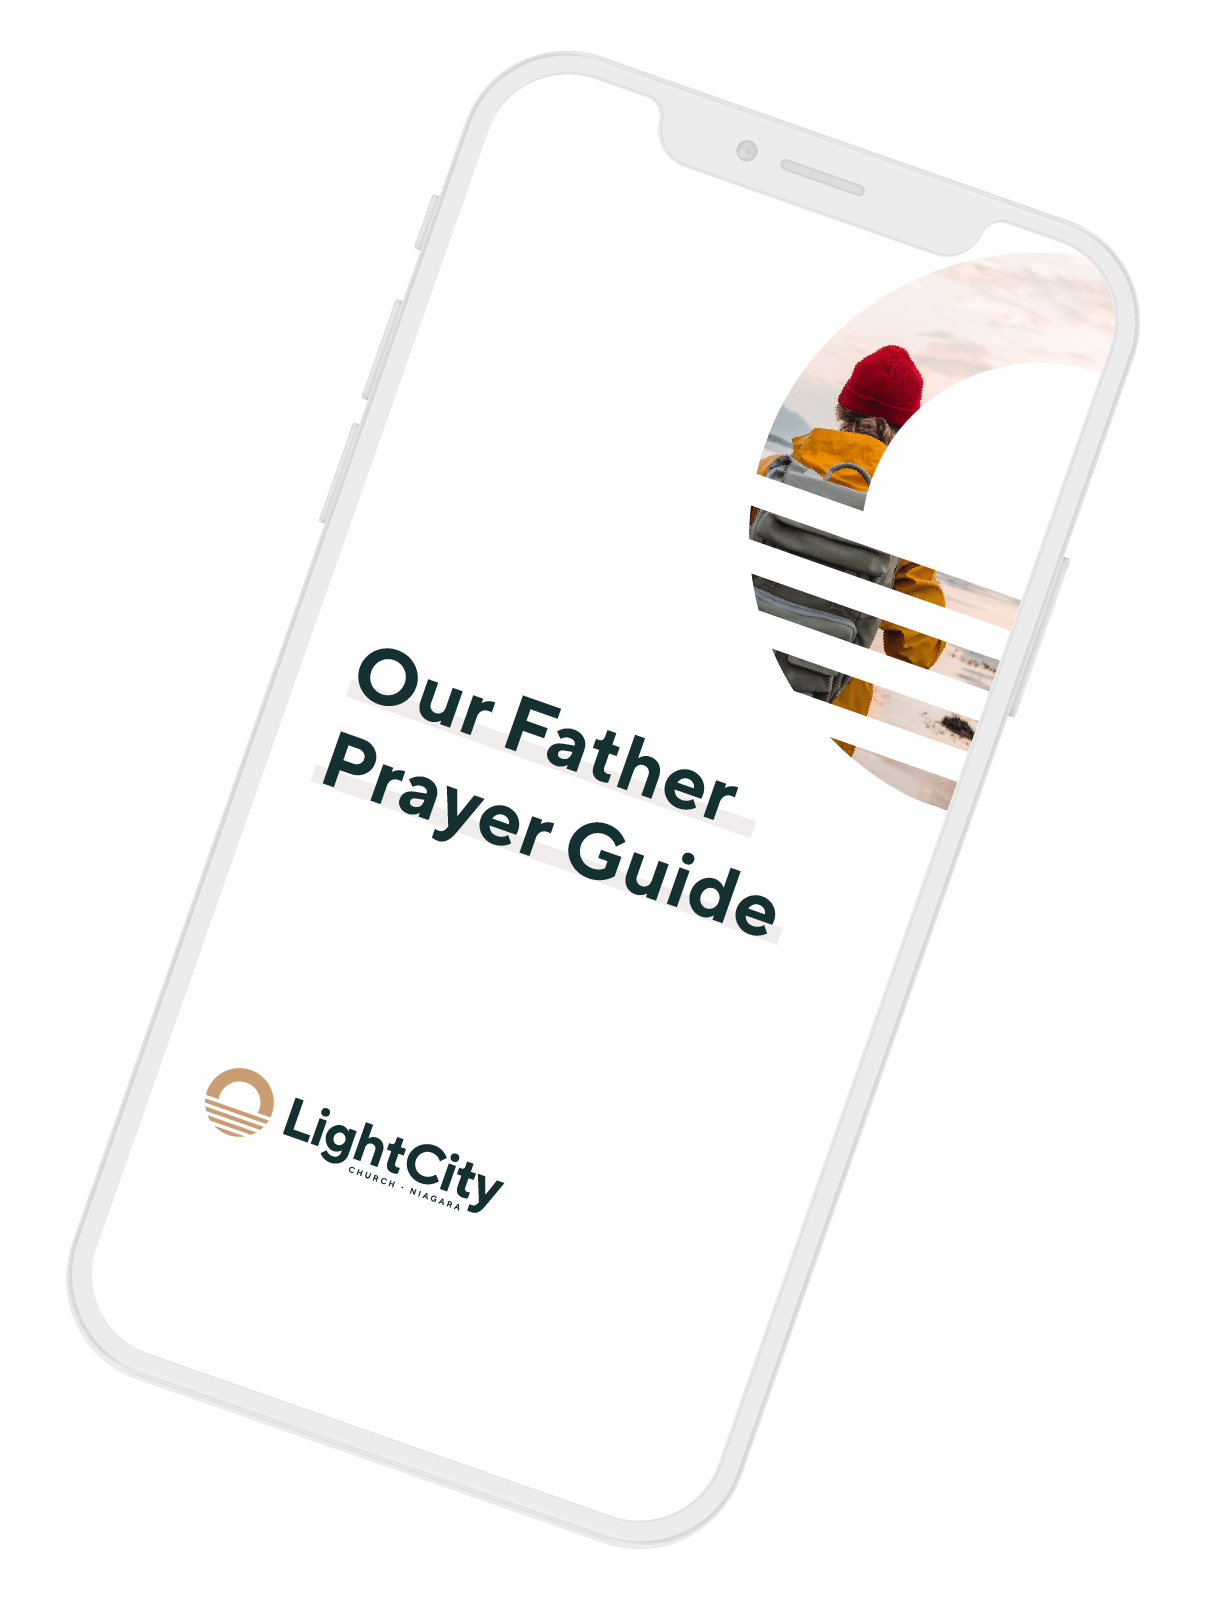 Our Father Prayer Guide Phone Image